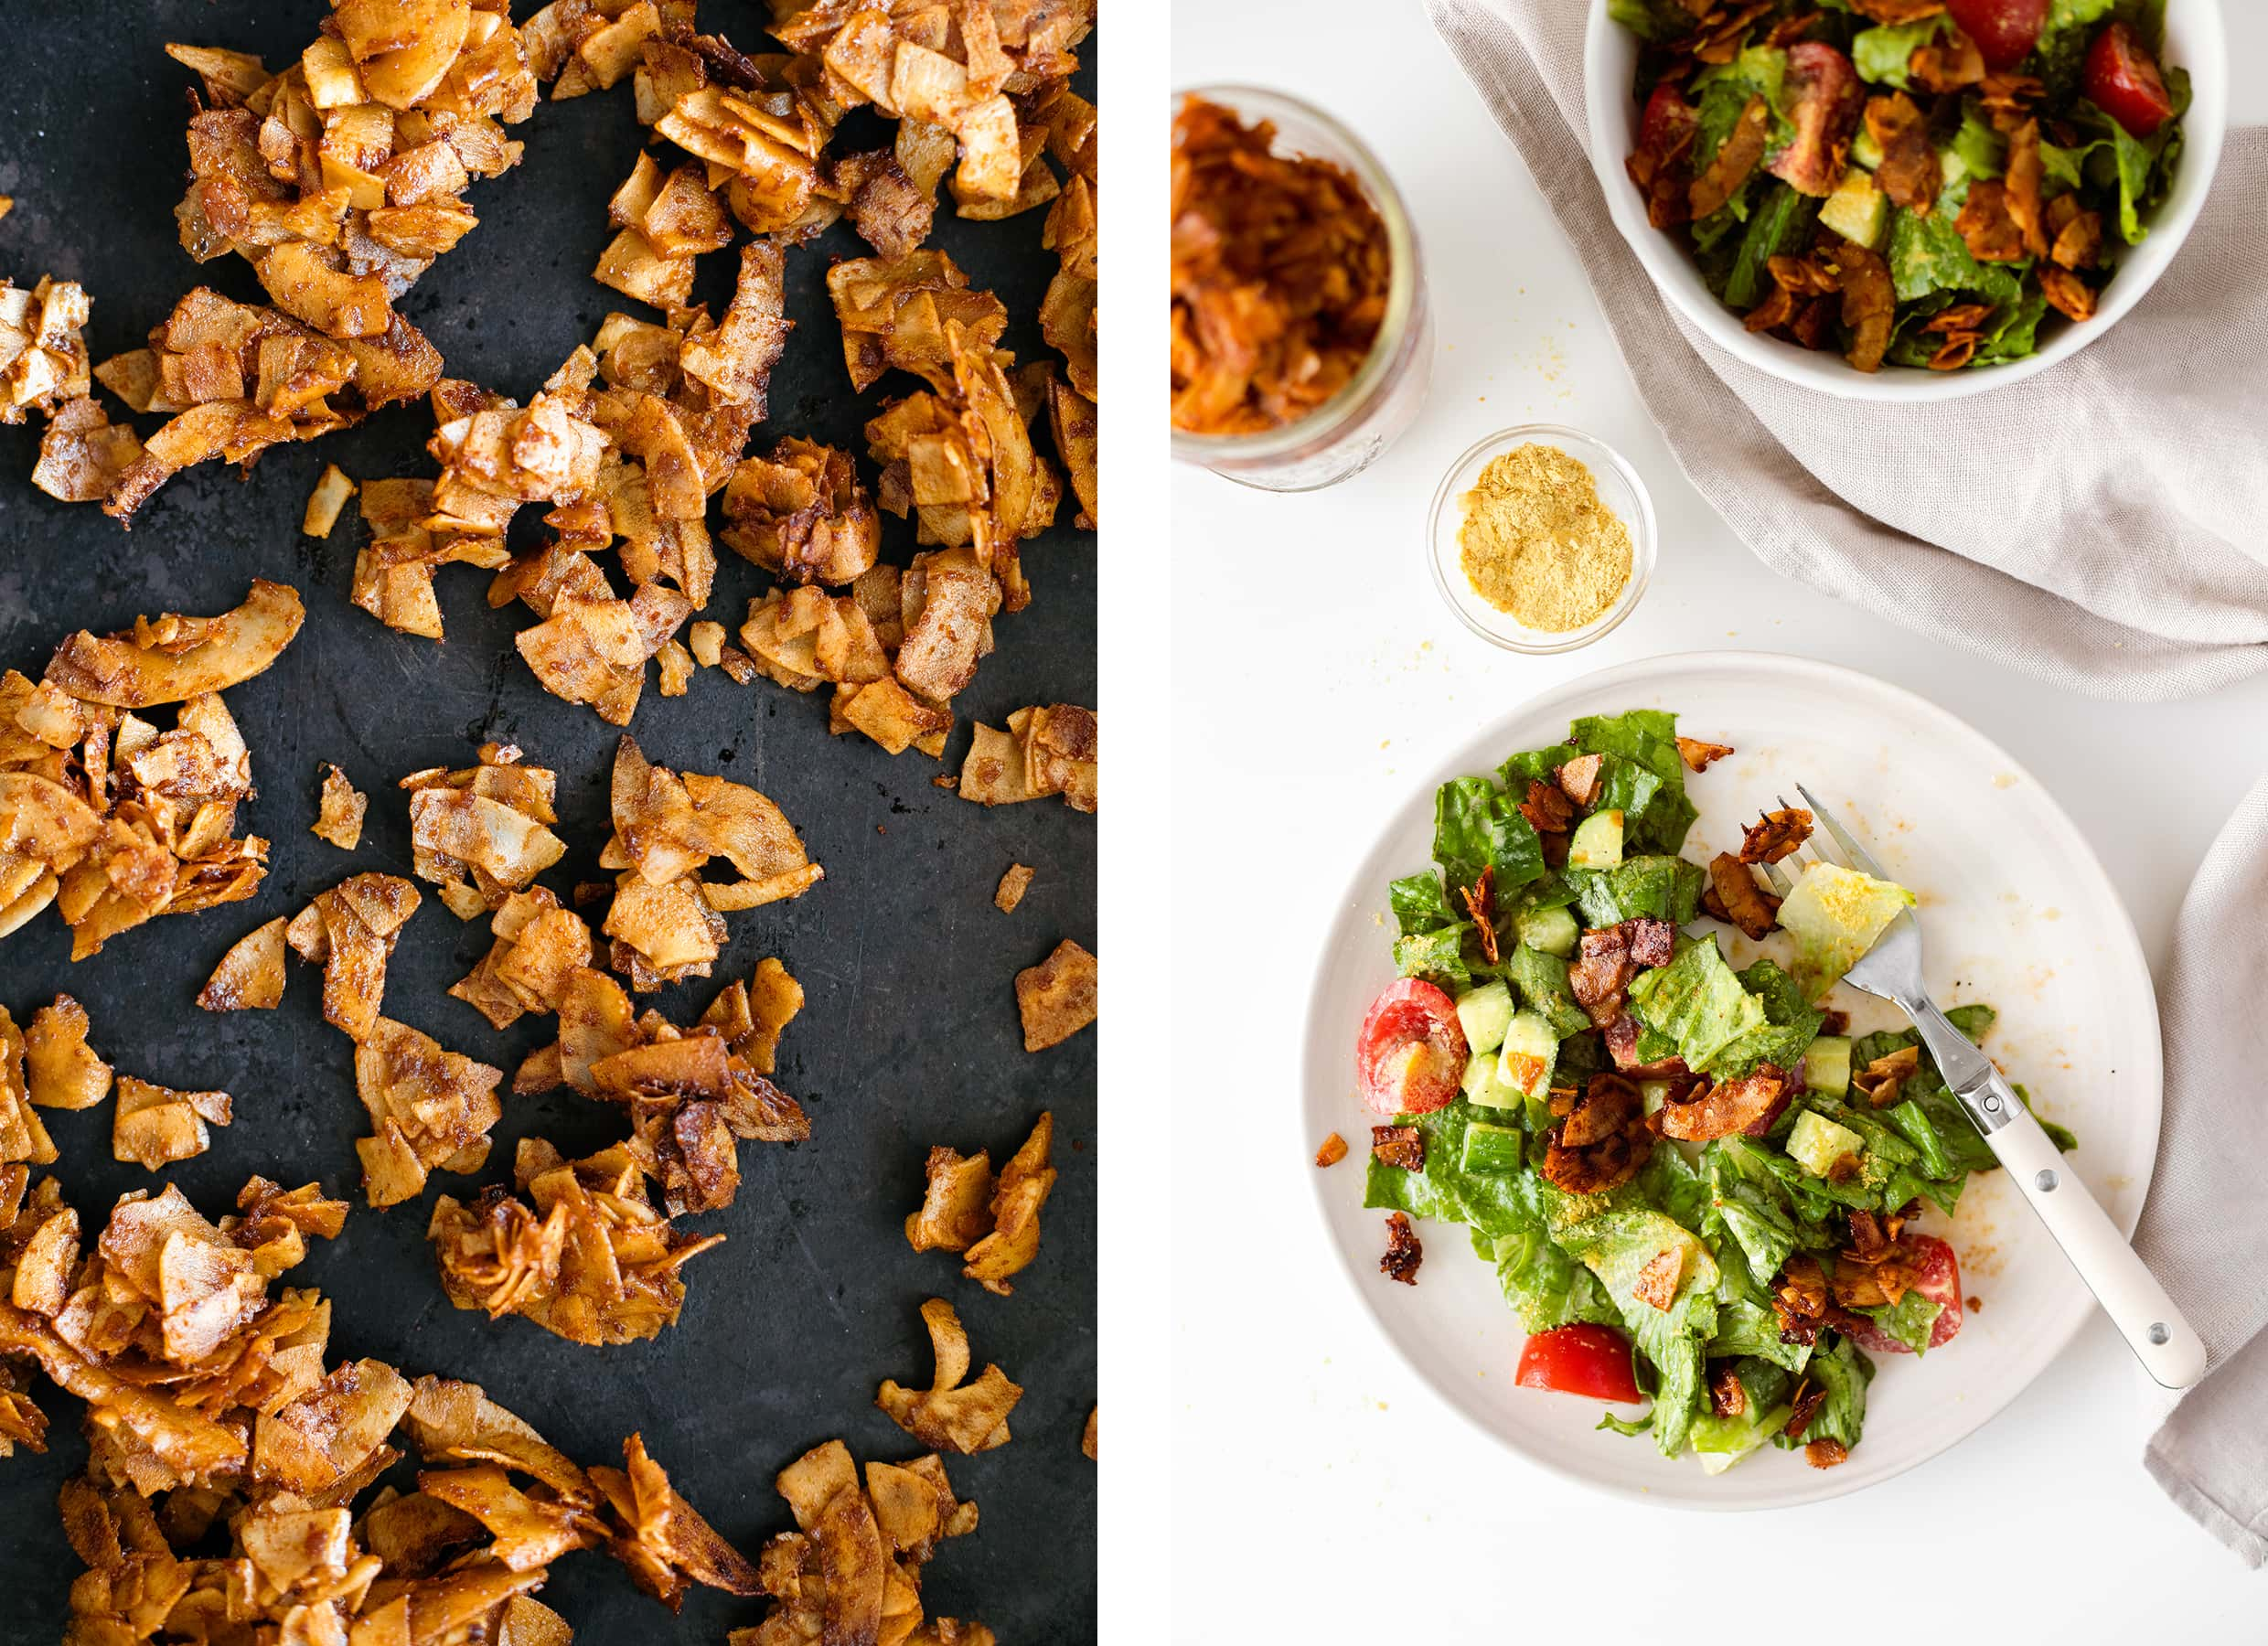 Two photos - one of vegan coconut bacon on a baking sheet and one of a green salad with coconut bacon